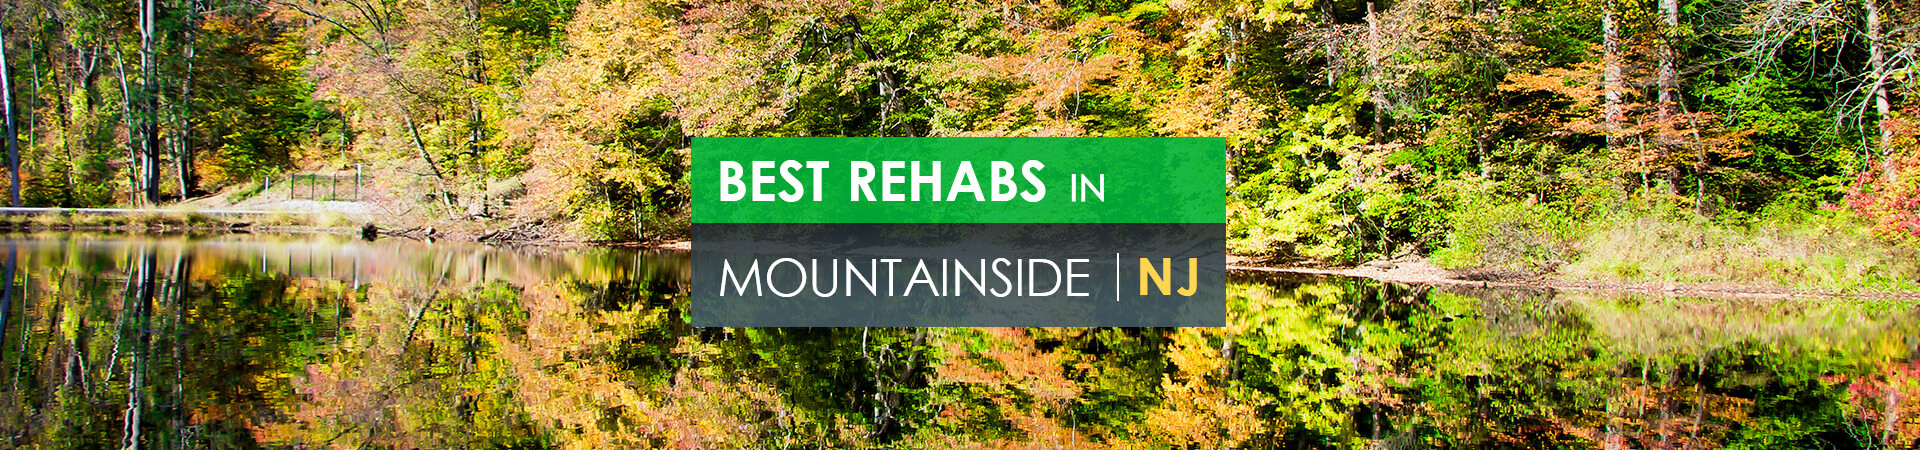 Best rehabs in Mountainside, NJ